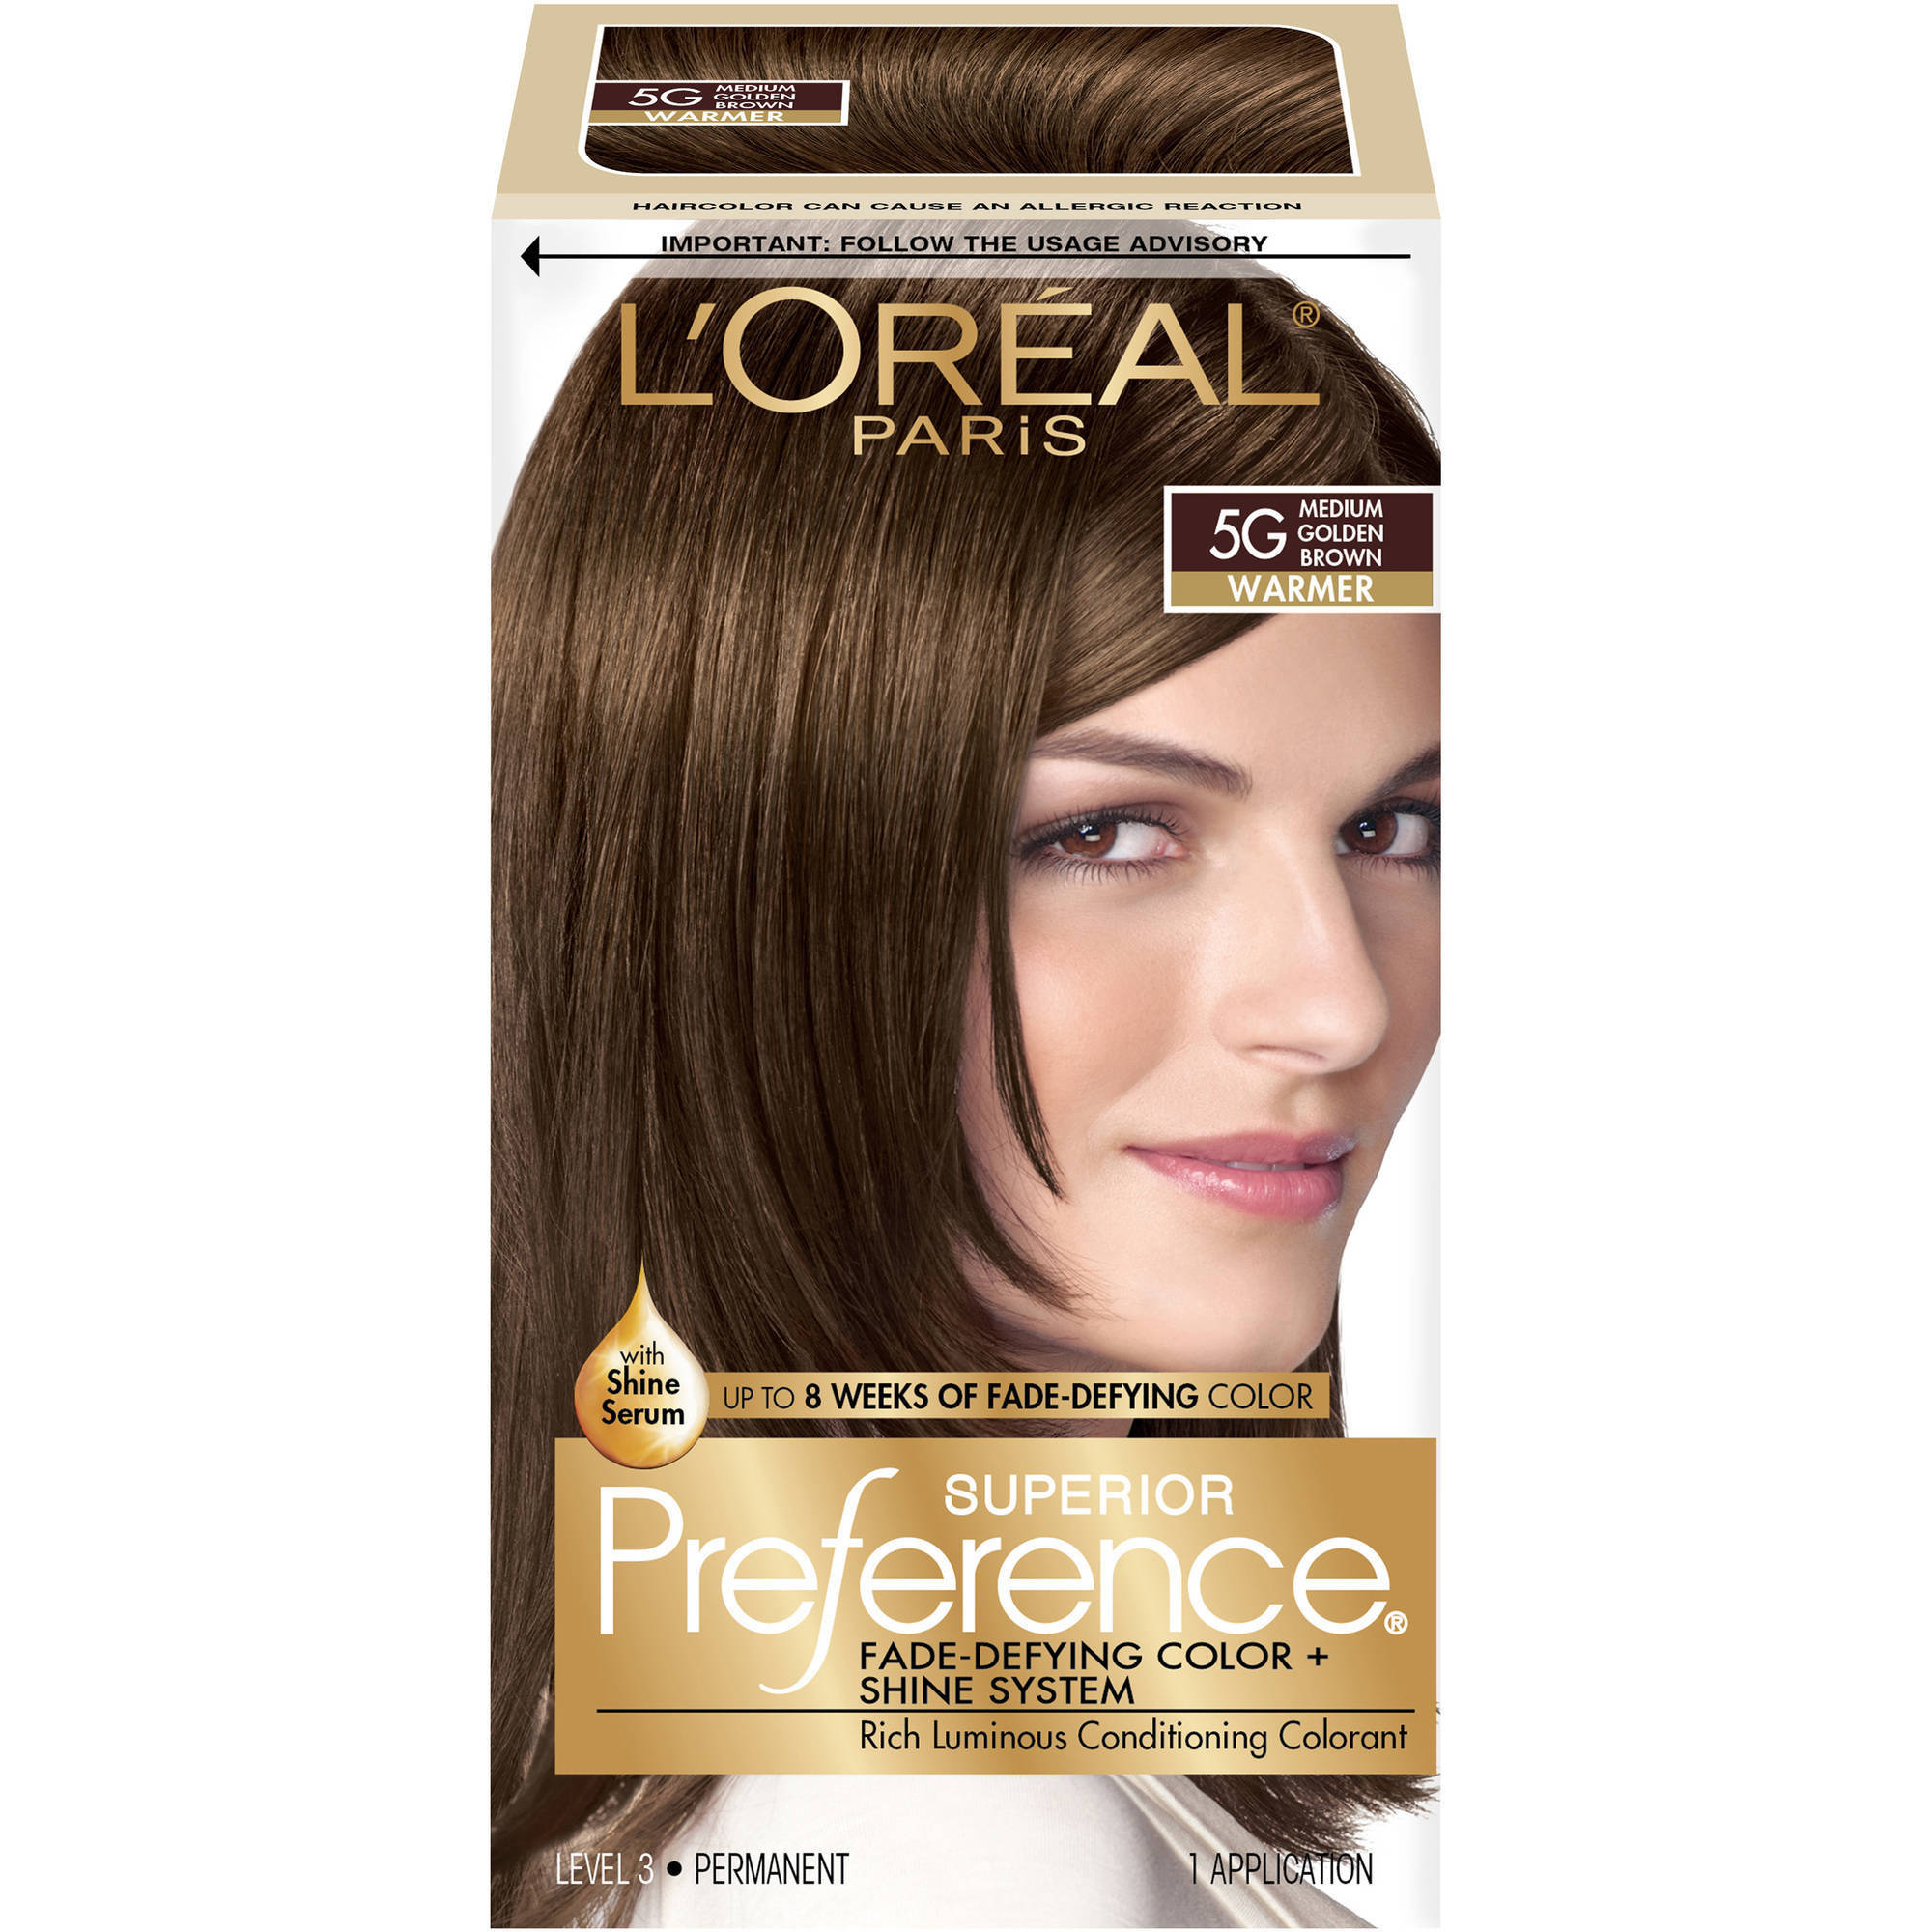 L'Oreal Paris Superior Preference Fade-Defying Color + Shine Hair Color, 5G Medium Golden Brown - Walmart.com